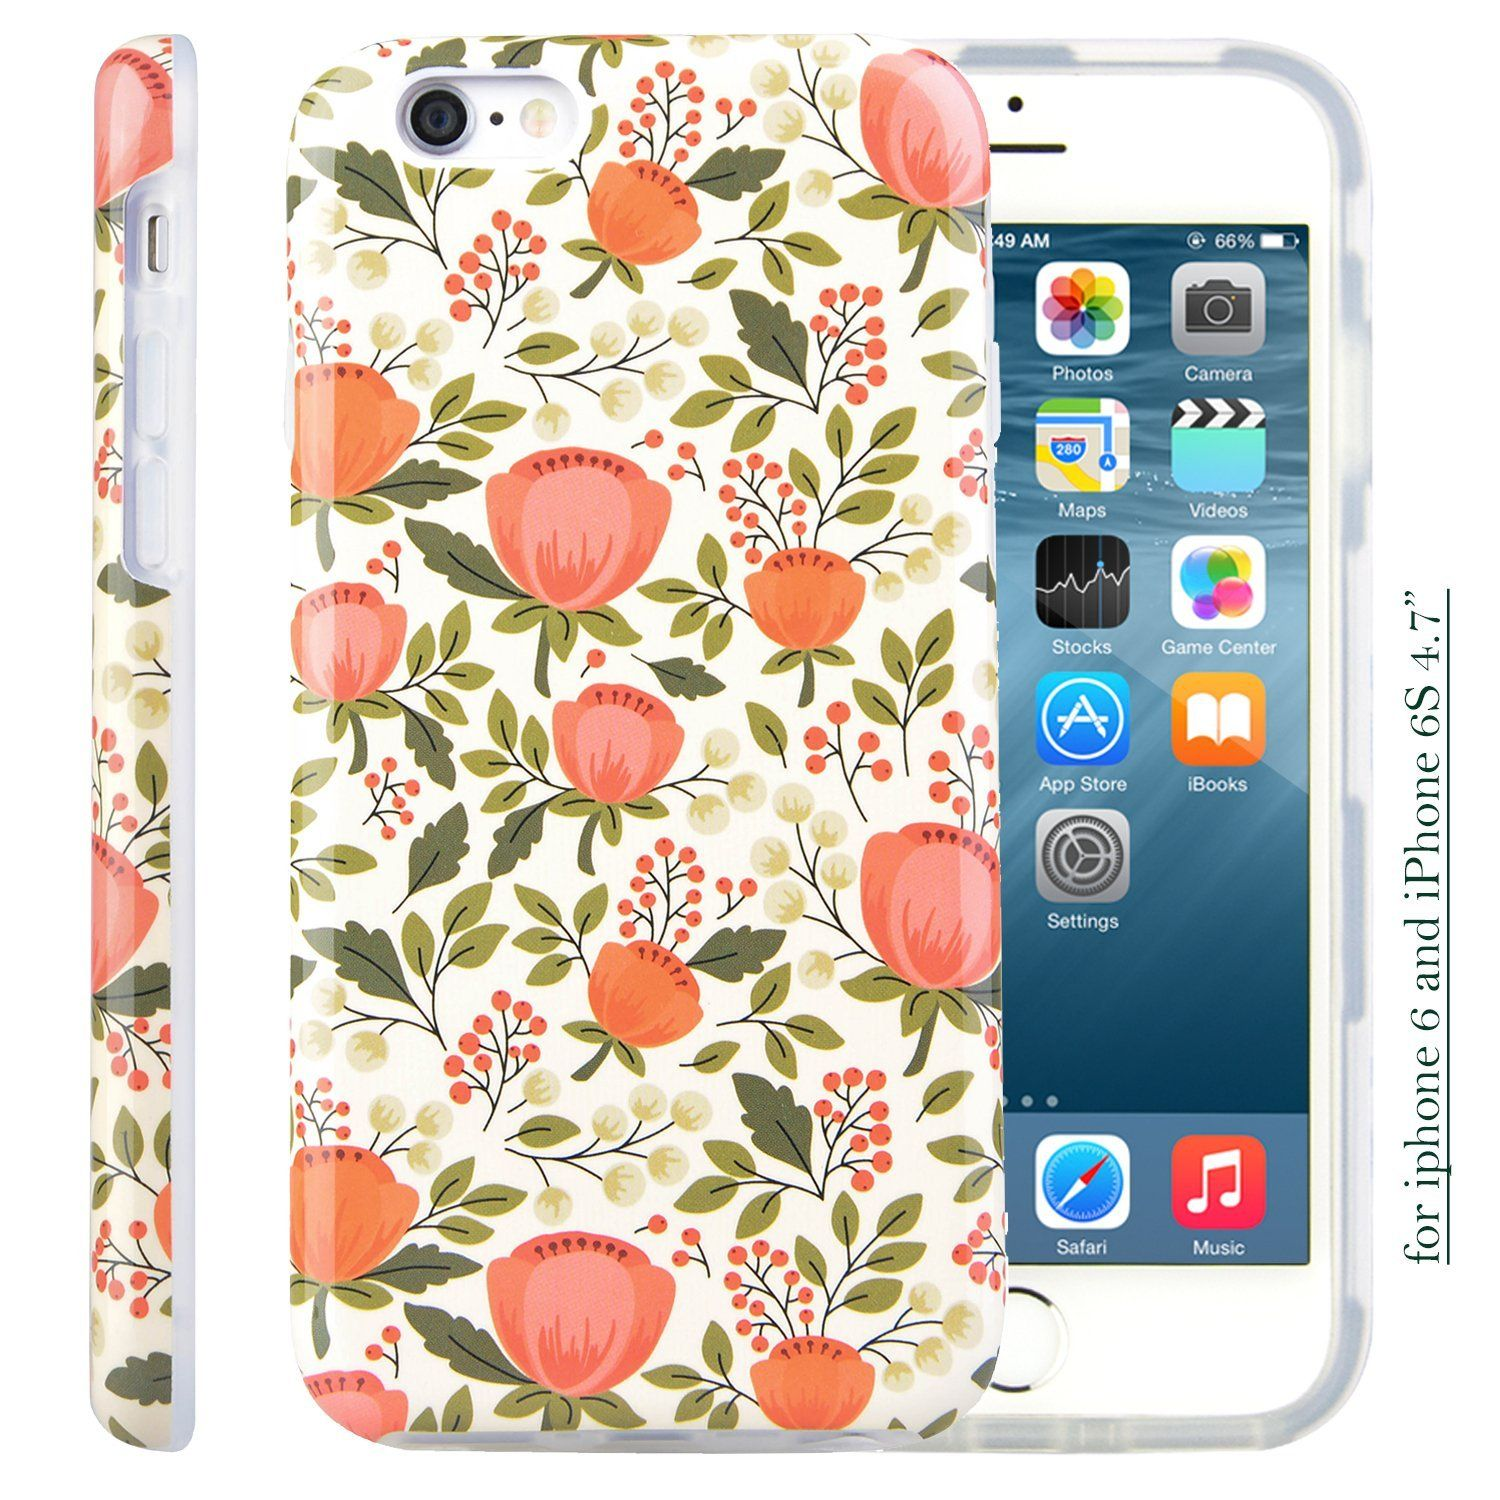 Iphone 6s Case For Girls Dimaka Printed Floral Pattern Retro Cute Style Full Side Protective 2 Layer Case With Glossy Cov Iphone 6s Case Floral Pattern Iphone